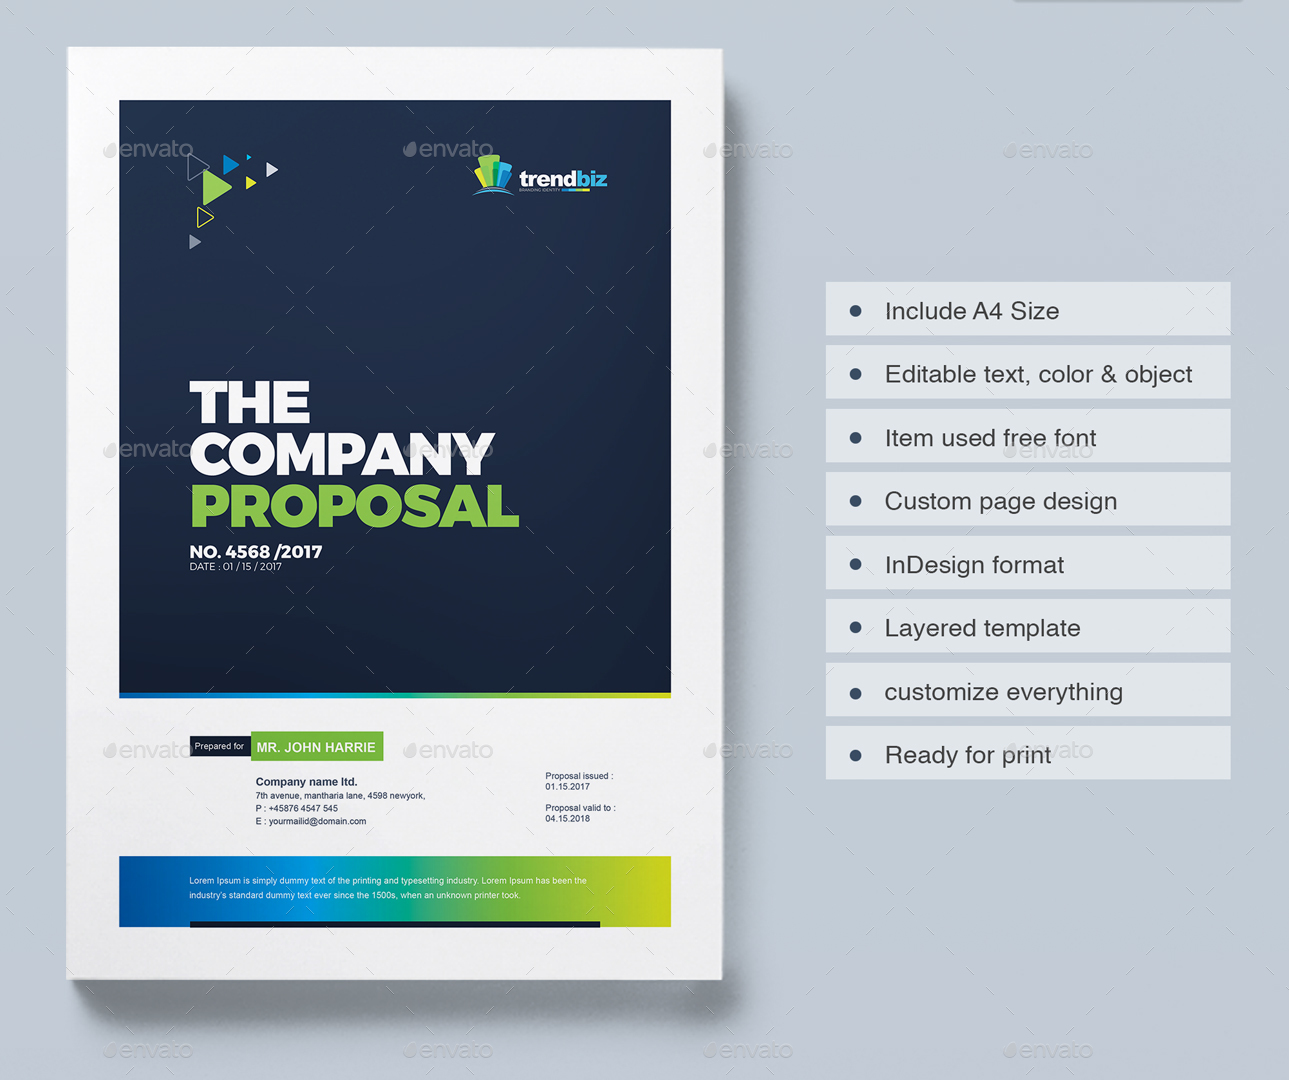 Proposal Template Design Project Proposal – Proposal Cover Page Design